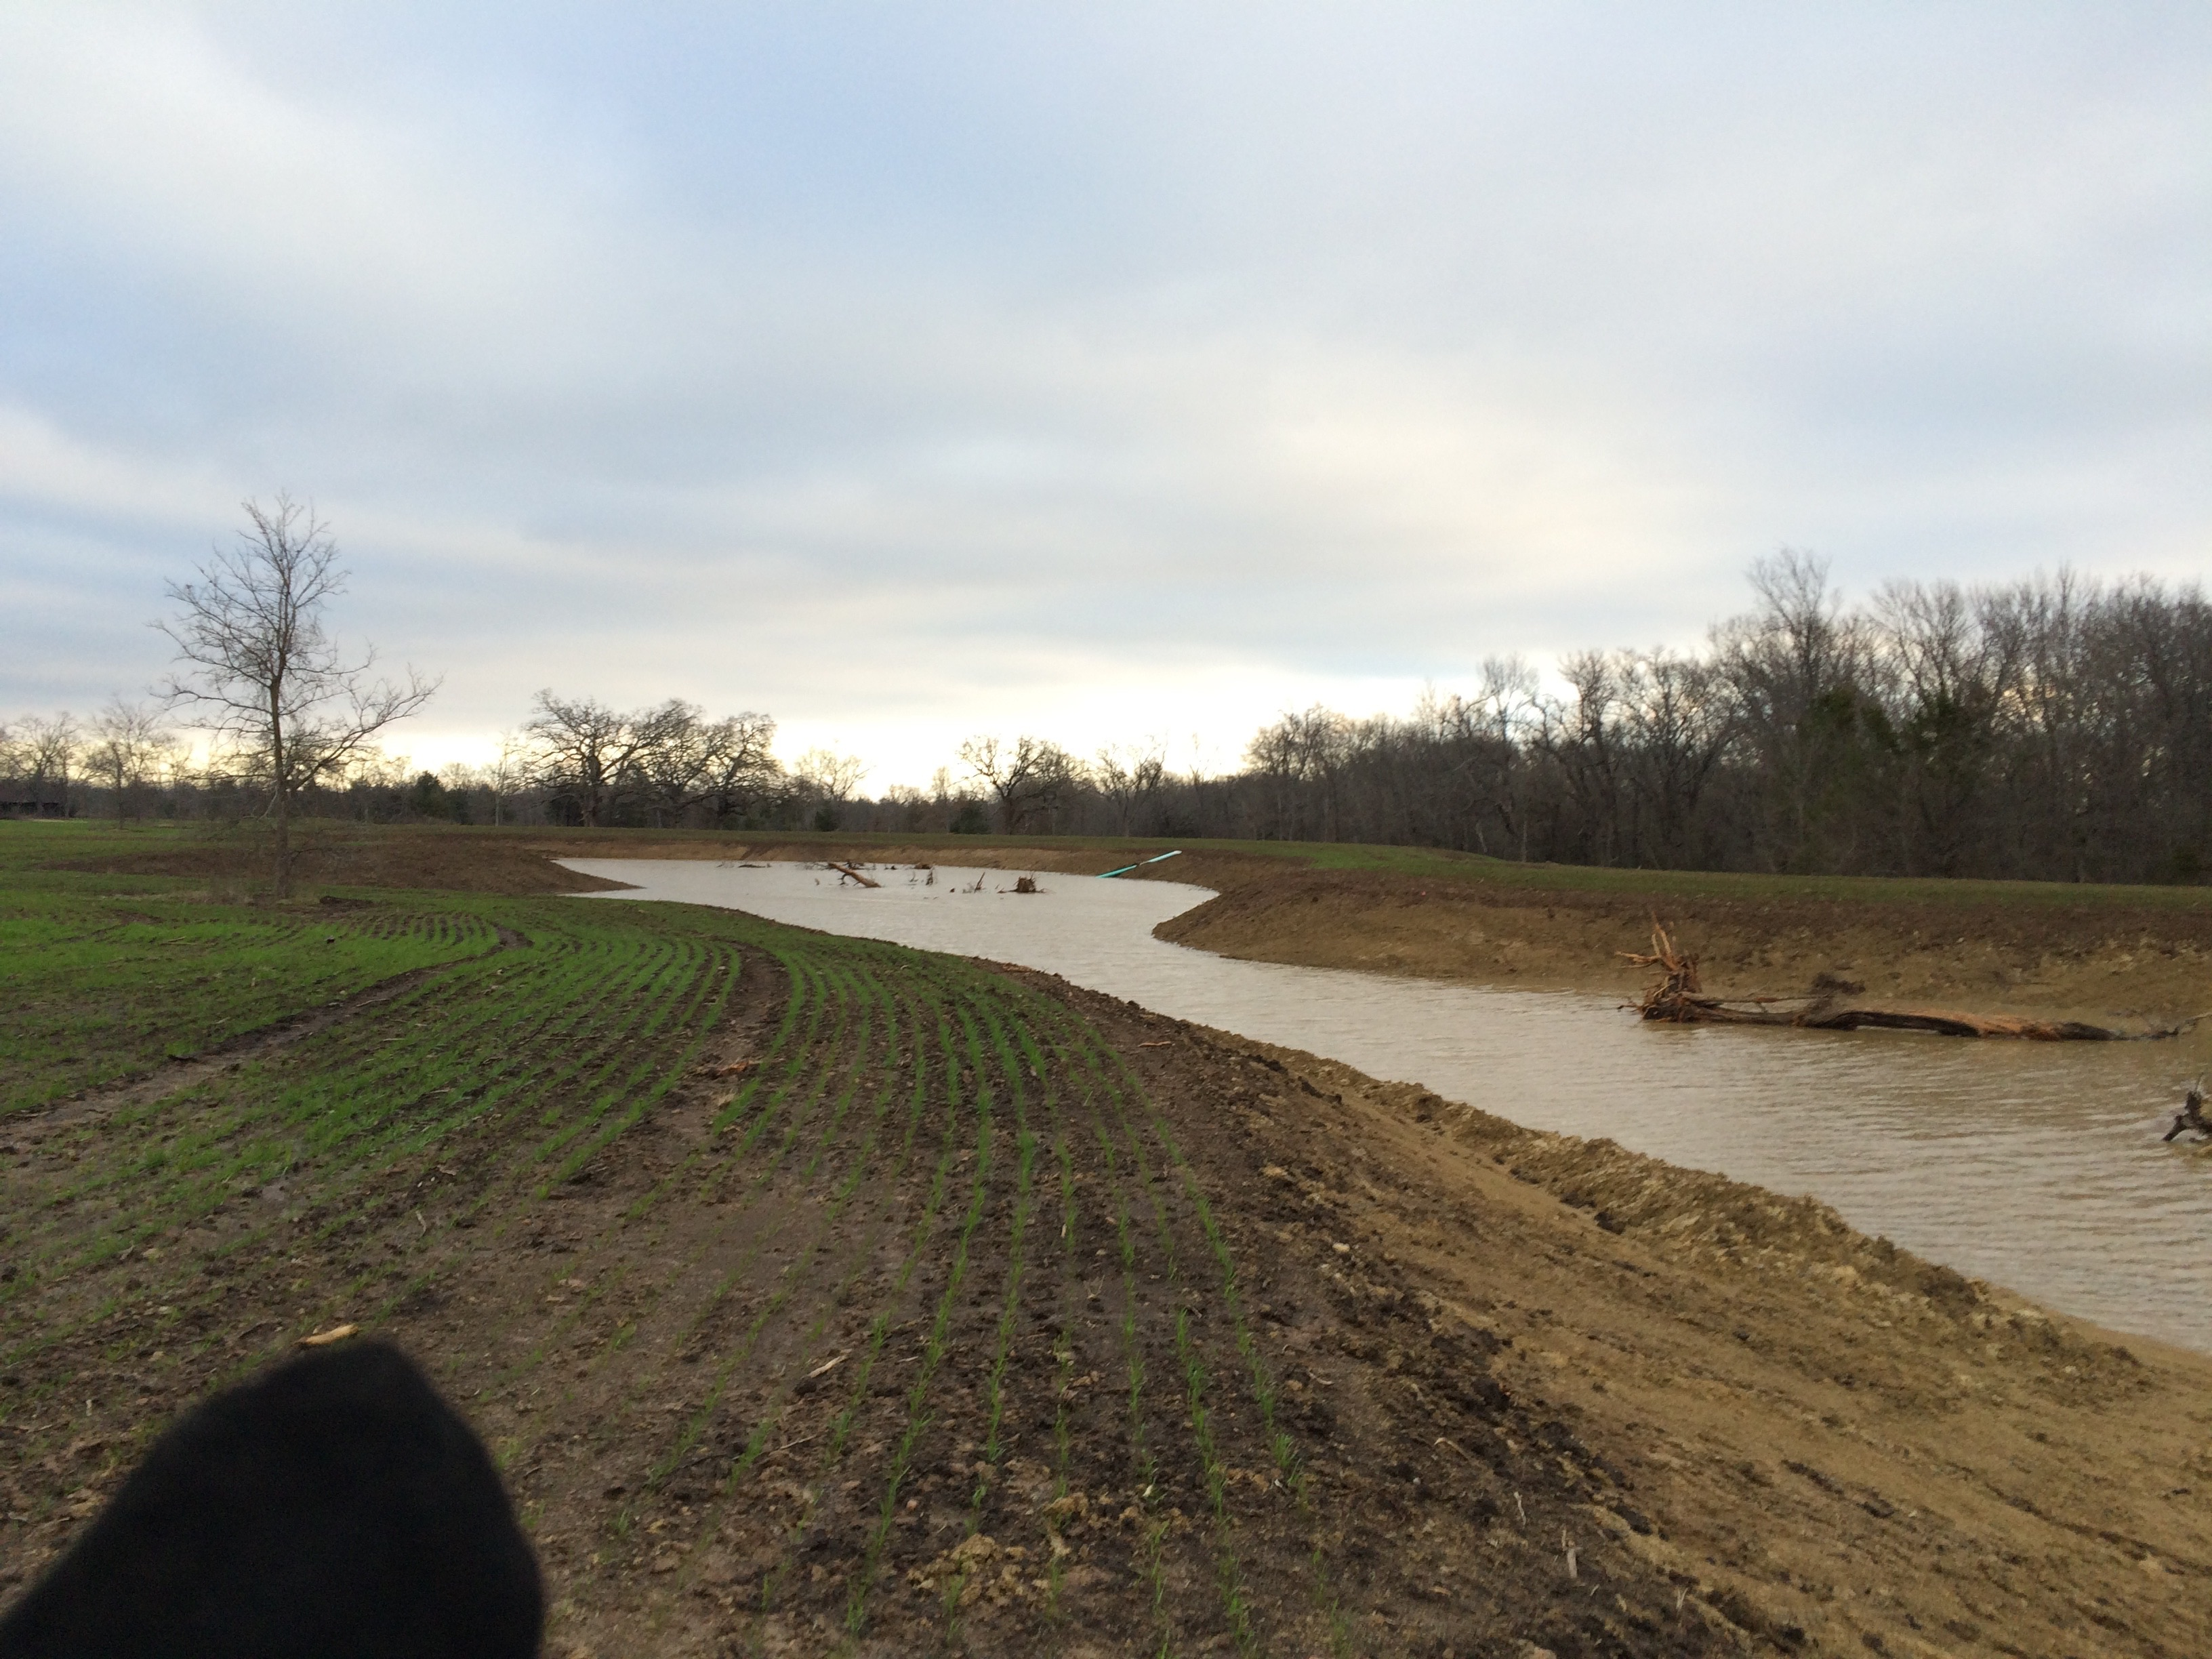 New pond near sulphur springs corrective stocking pond for Stocked fishing ponds near me